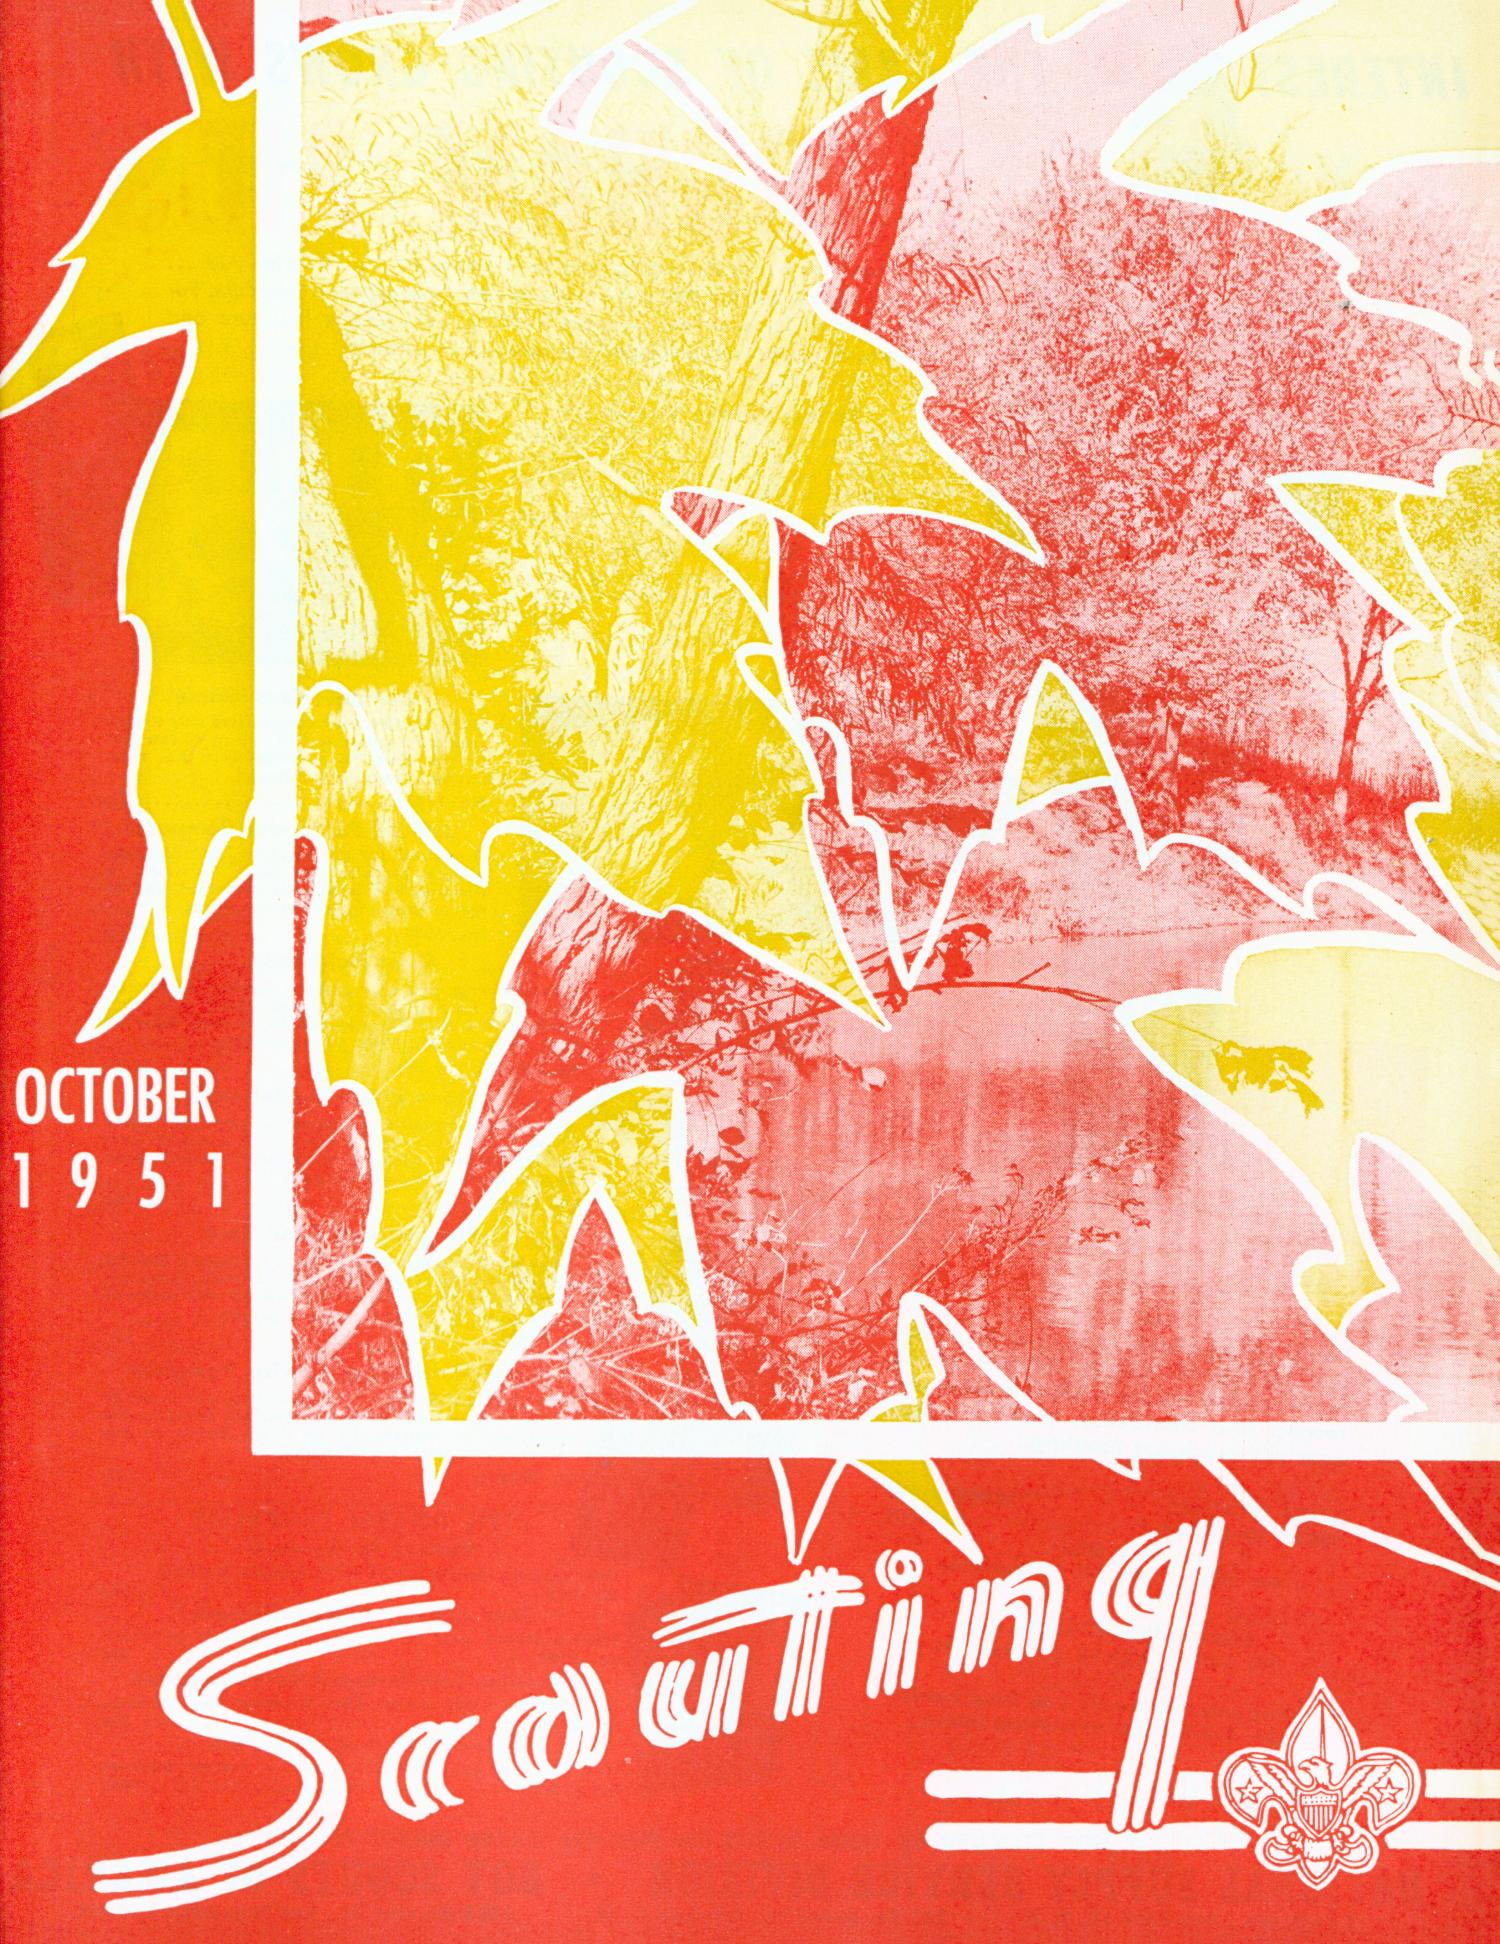 Scouting, Volume 39, Number 8, October 1951                                                                                                      Front Cover